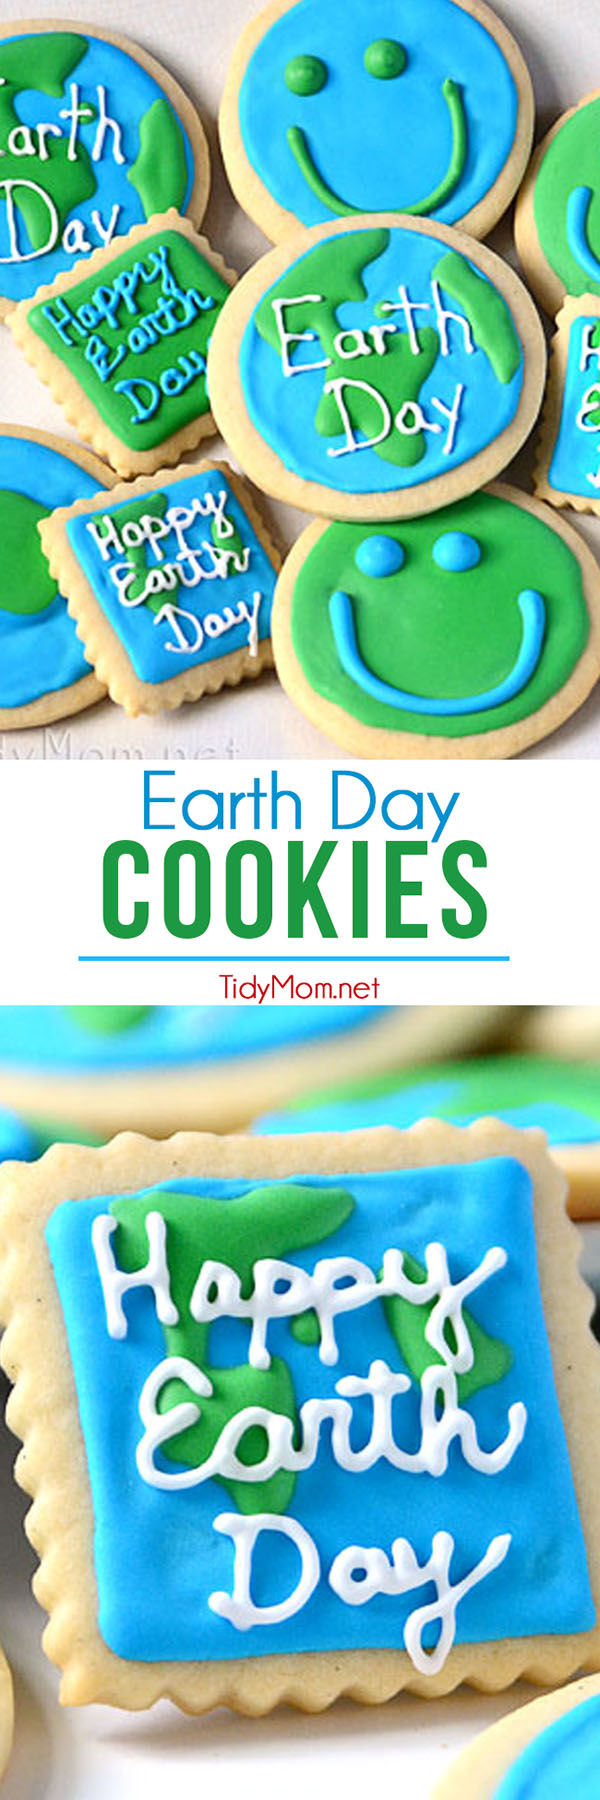 Earth Day Cookies at TidyMom.net